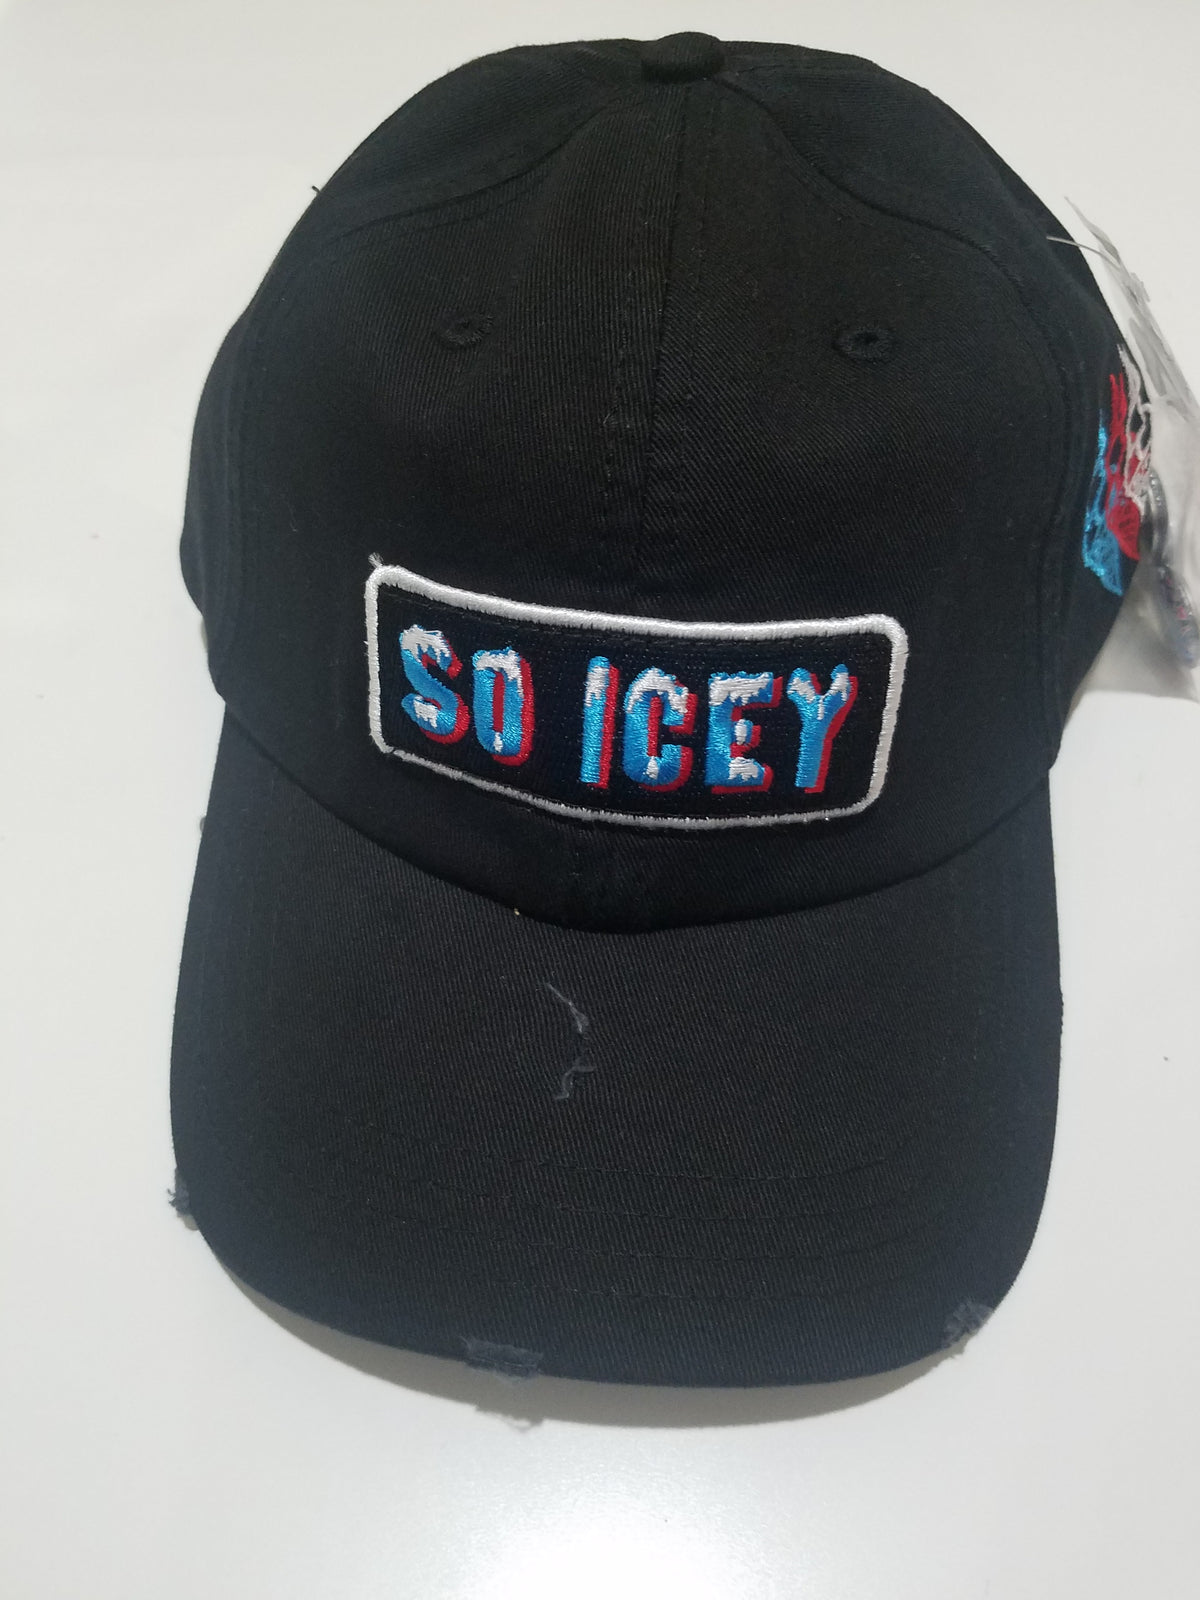 Icey Dad Hat Black (DHICEYBLK) - cosign1975